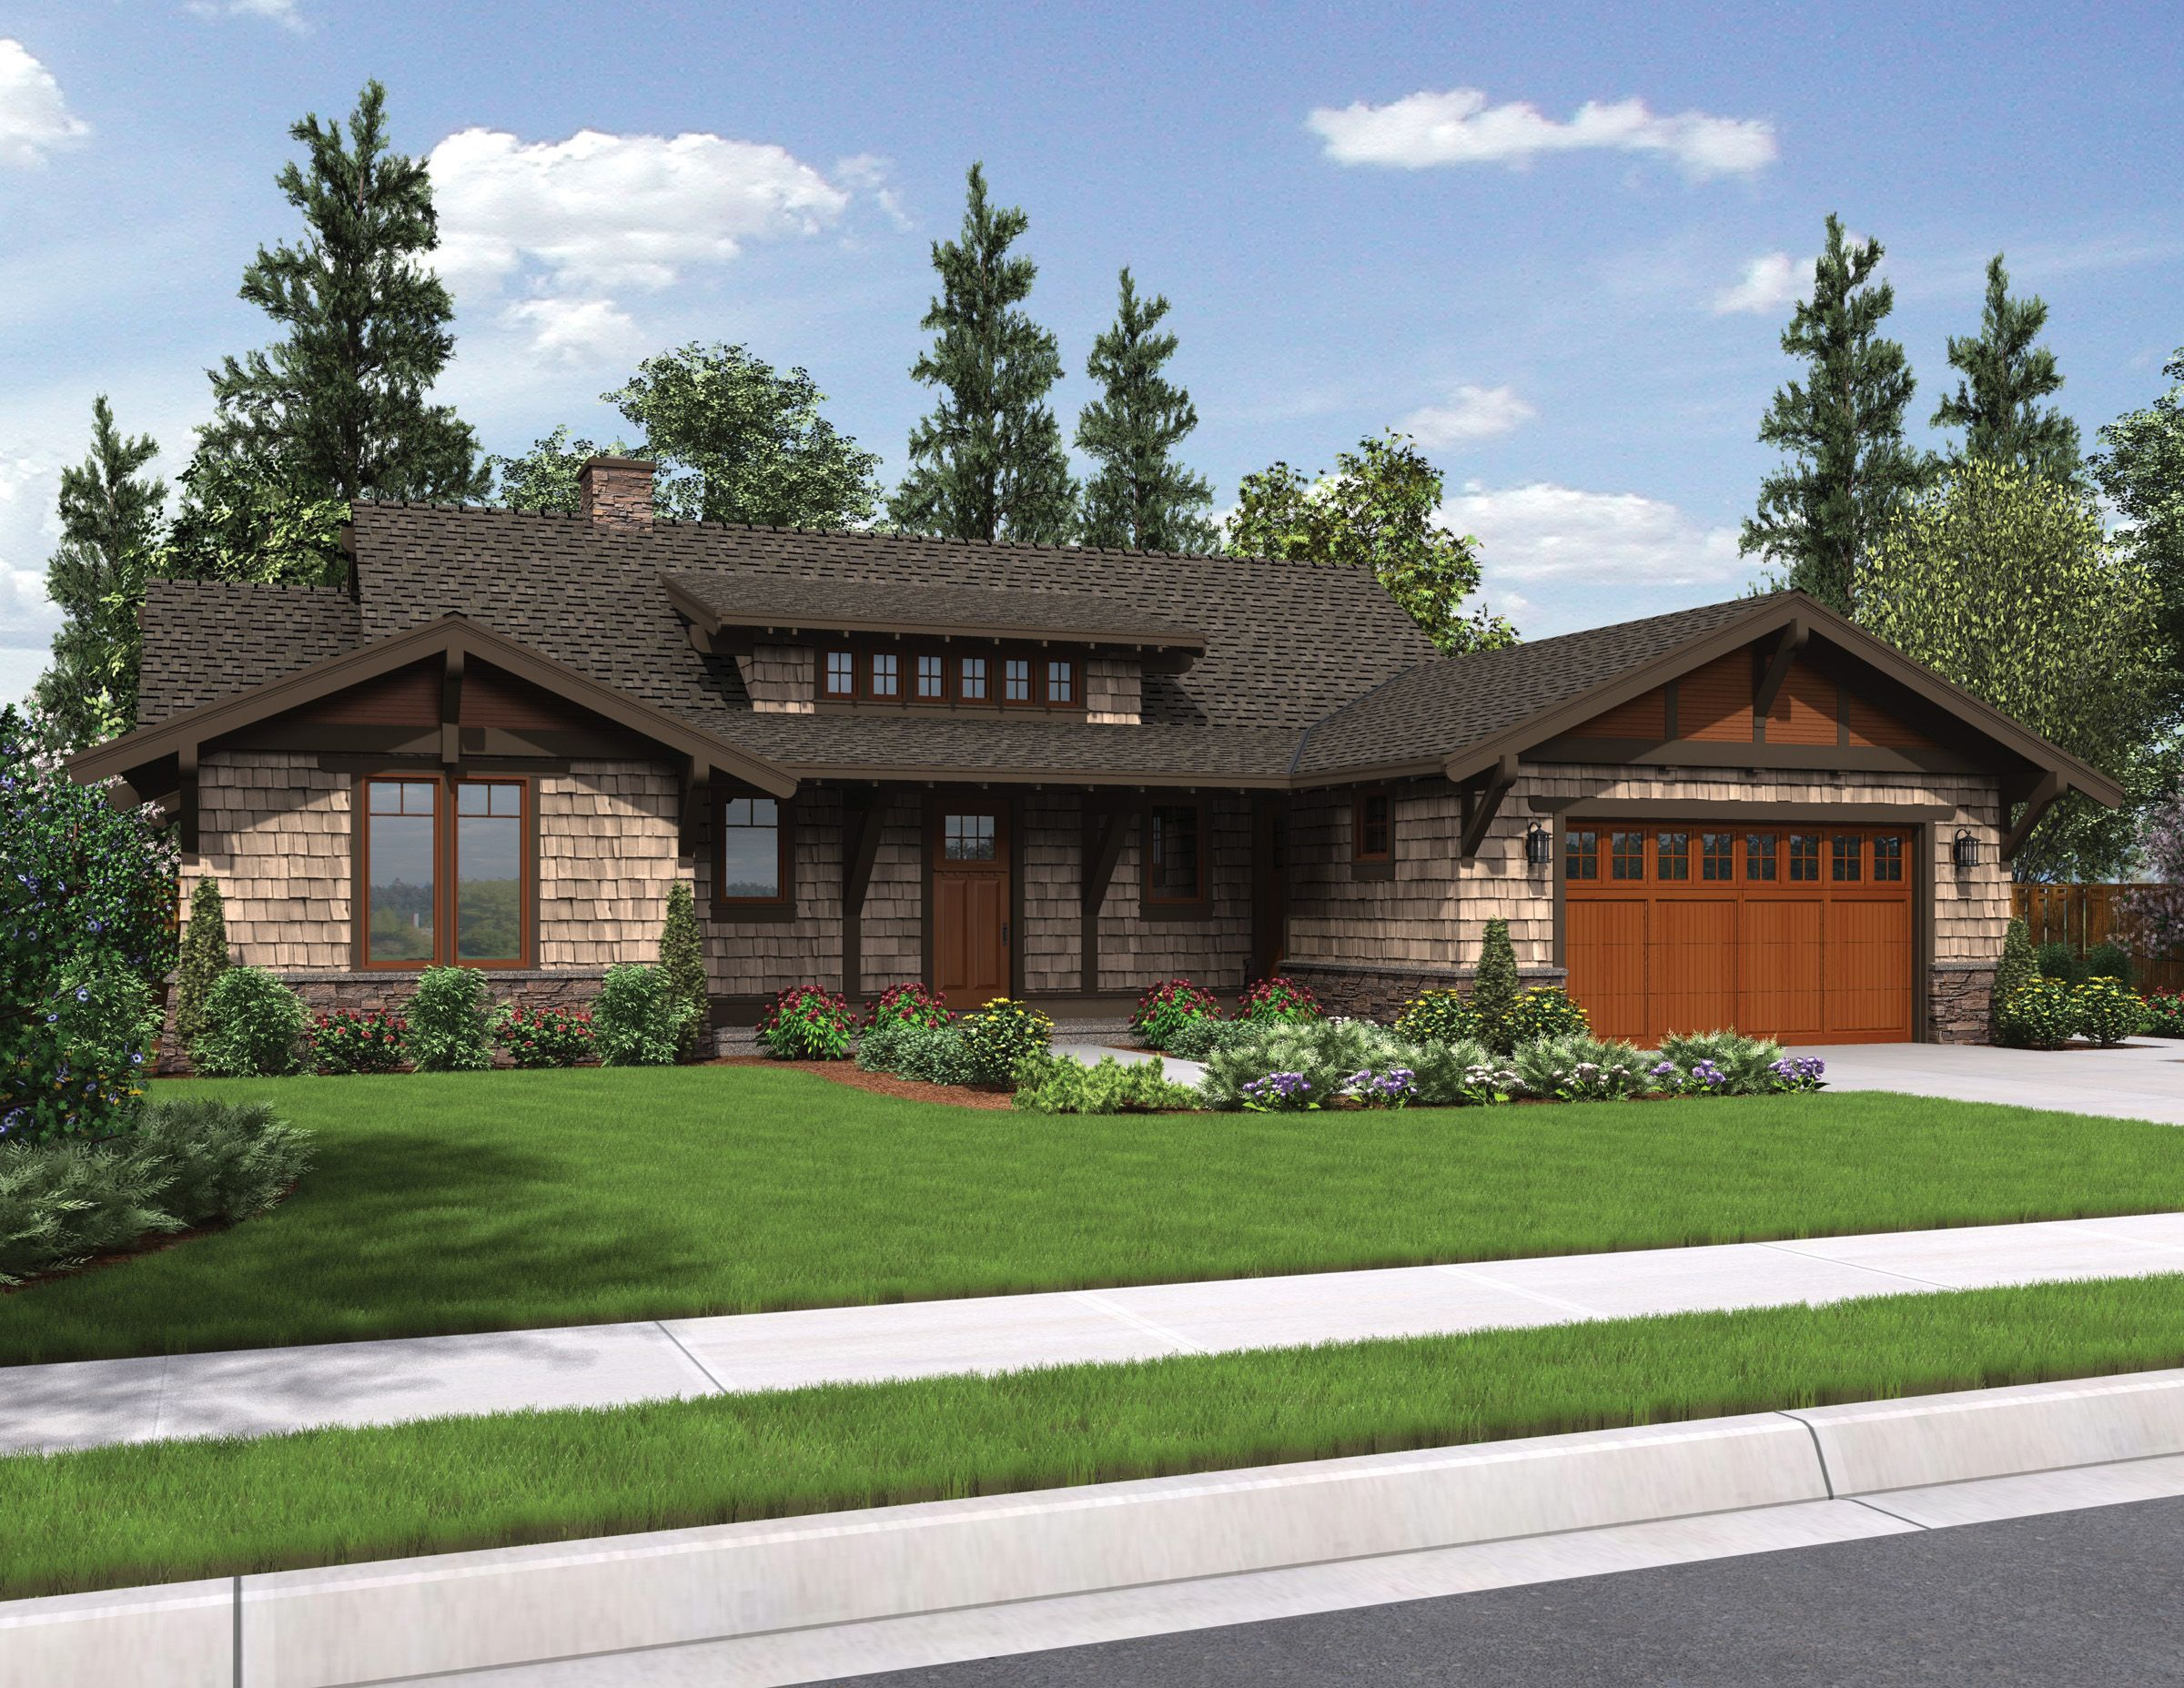 Plan 69545AM: Rustic Craftsman With Shed Dormer | Craftsman ... on remodel attic with dormer, ranch house with bay window, ranch house with basement, ranch house with flat roof, shed roof dormer, ranch house with eyebrow, ranch style home with double dormer,